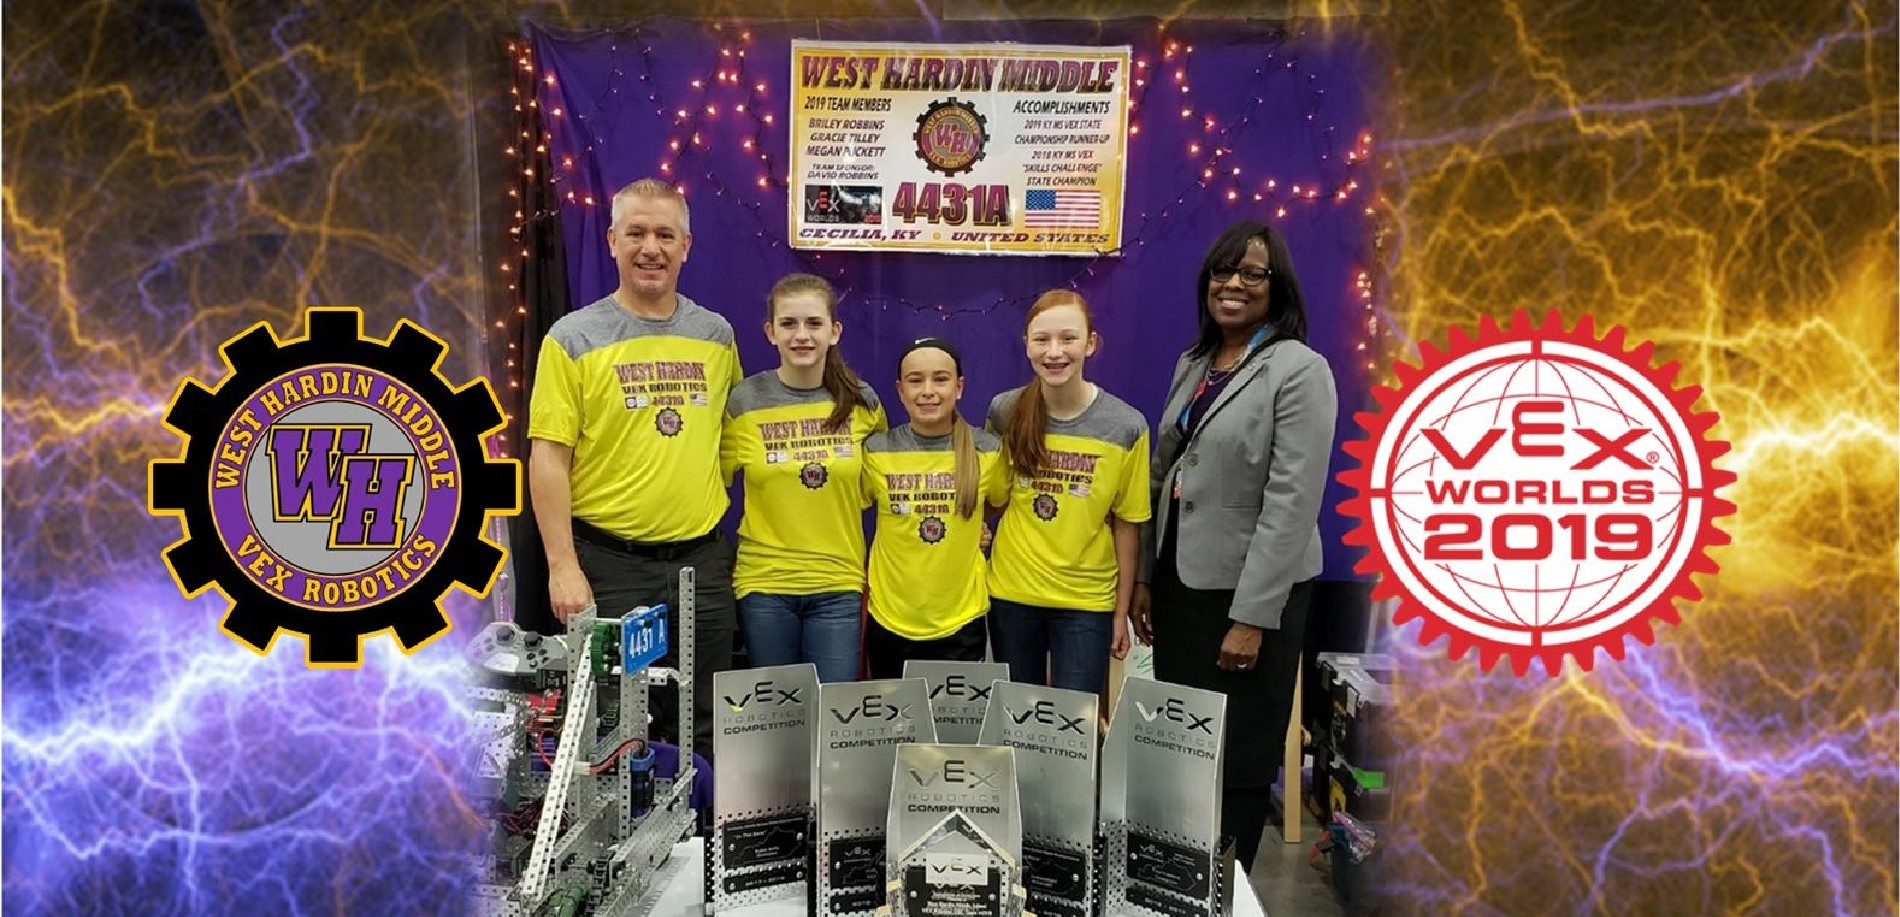 KY Lieut. Governor Jenean M. Hampton visits West Hardin at the 2019 VEX World Championship!